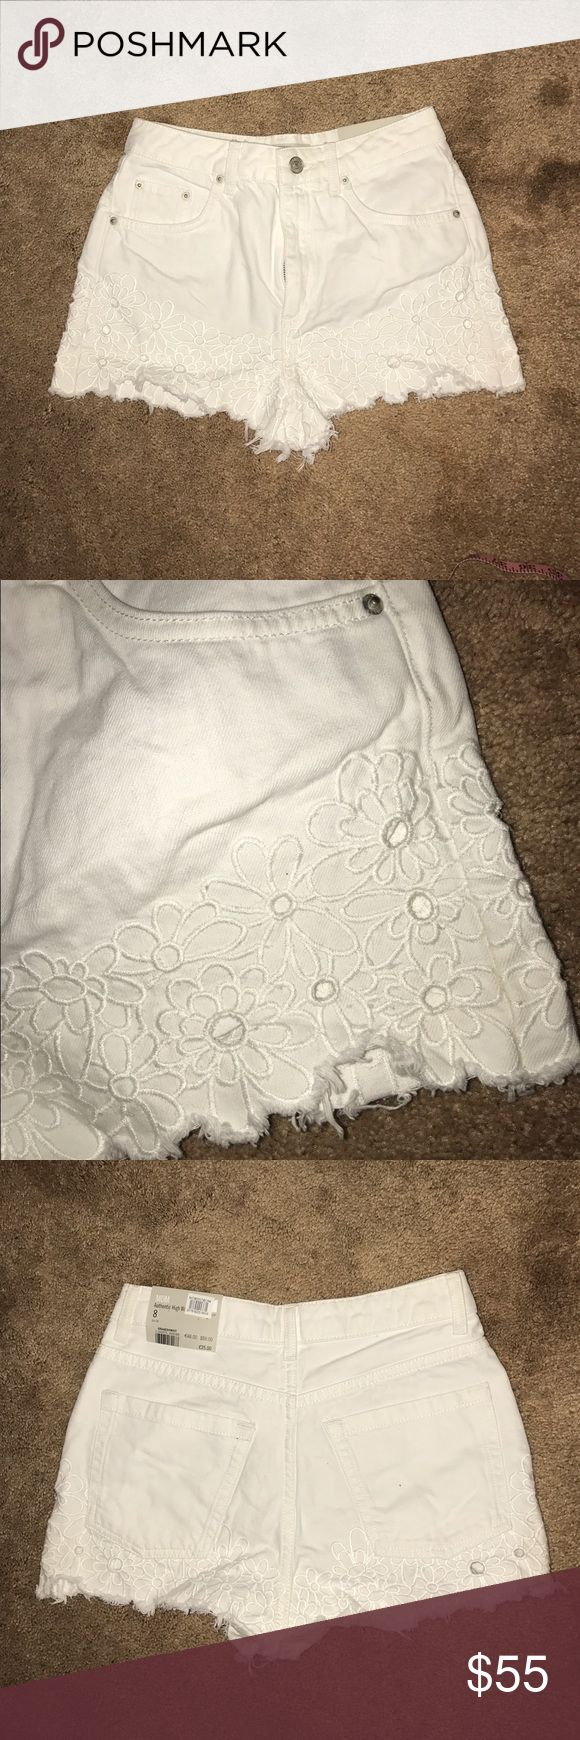 "TOPSHOP DENIM HIGH WAIST SHORTS NWT TOPSHOP NWT HIGH WAIST DENIM SHORTS in a white color with stitched daisy print! These are a ""cut off"" style and are in EXCELLENT CONDITION! NEVER BEEN WORN AT ALL, STILL HAVE TAGS. They said a 4, but they are actually smaller. No rips, tears, or holes located anywhere on the shorts! I included a picture showing that it is actually around a size 25. The inseam is 2 inches and the rise is 11. HAPPY SHOPPING! ***WILL SELL FOR LESS ON Ⓜ️ERCARI*** Topshop…"